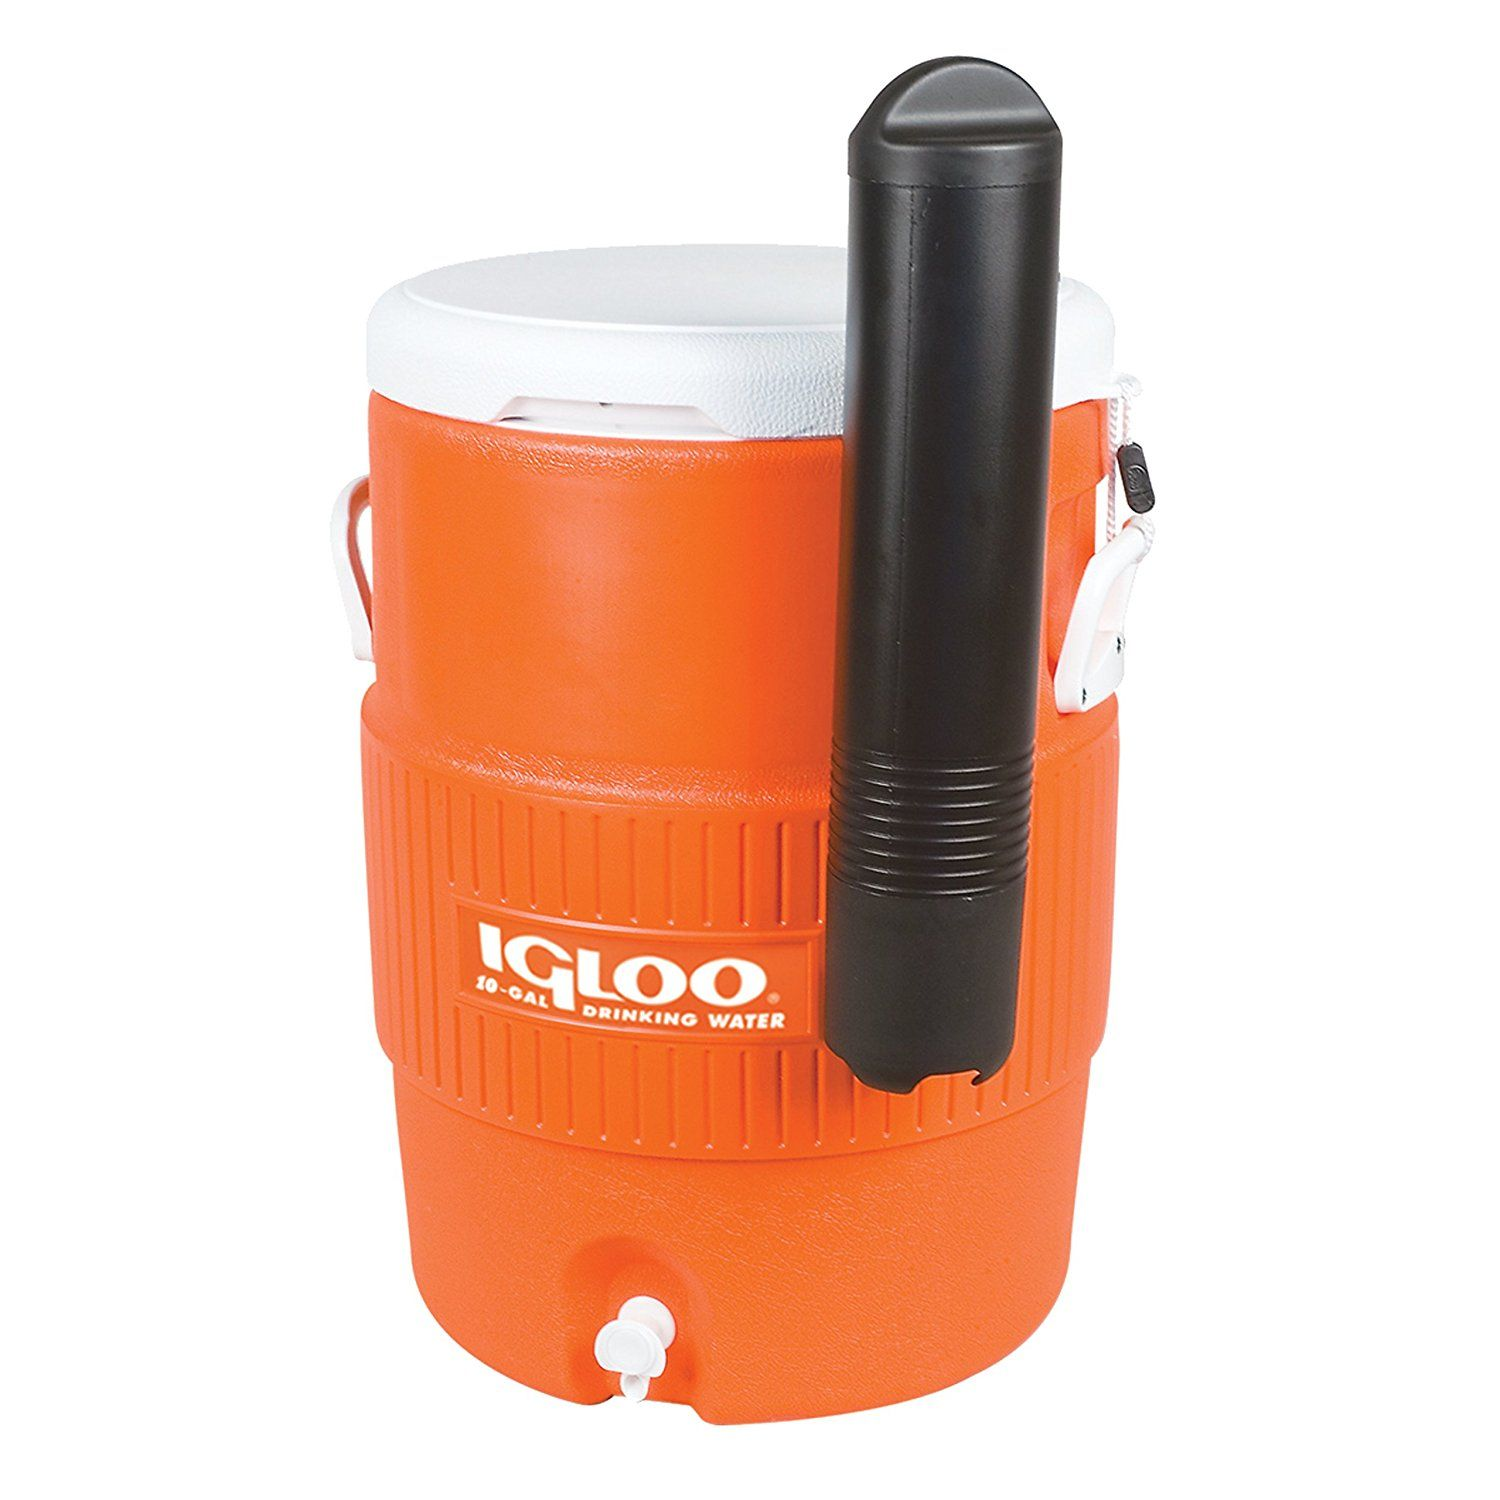 Igloo 10 Gallon Seat Top Beverage Dispenser With Spigot And Cup Dispenser This Is An Amazon Affiliate Link Clic Igloo Cooler Drink Dispenser Beverage Cooler